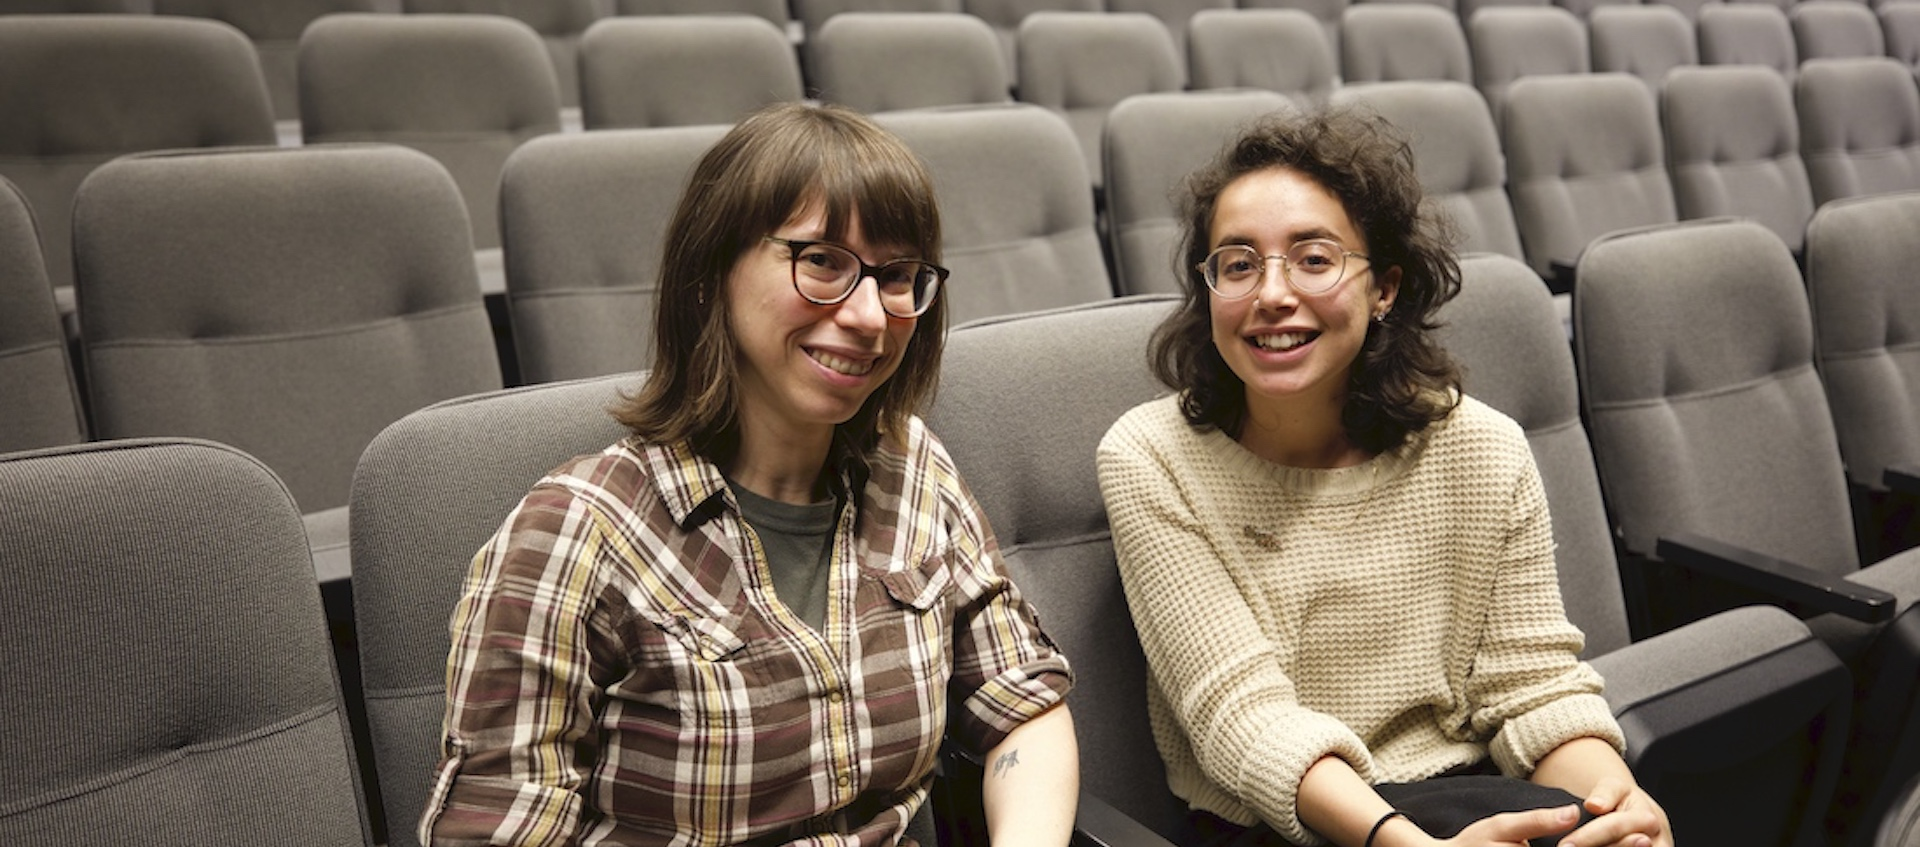 Wexner Center for the Arts projectionist Rachael Barbash and Film/Video program assistant Layla Muchnik-Benali sitting in an otherwise empty screening room